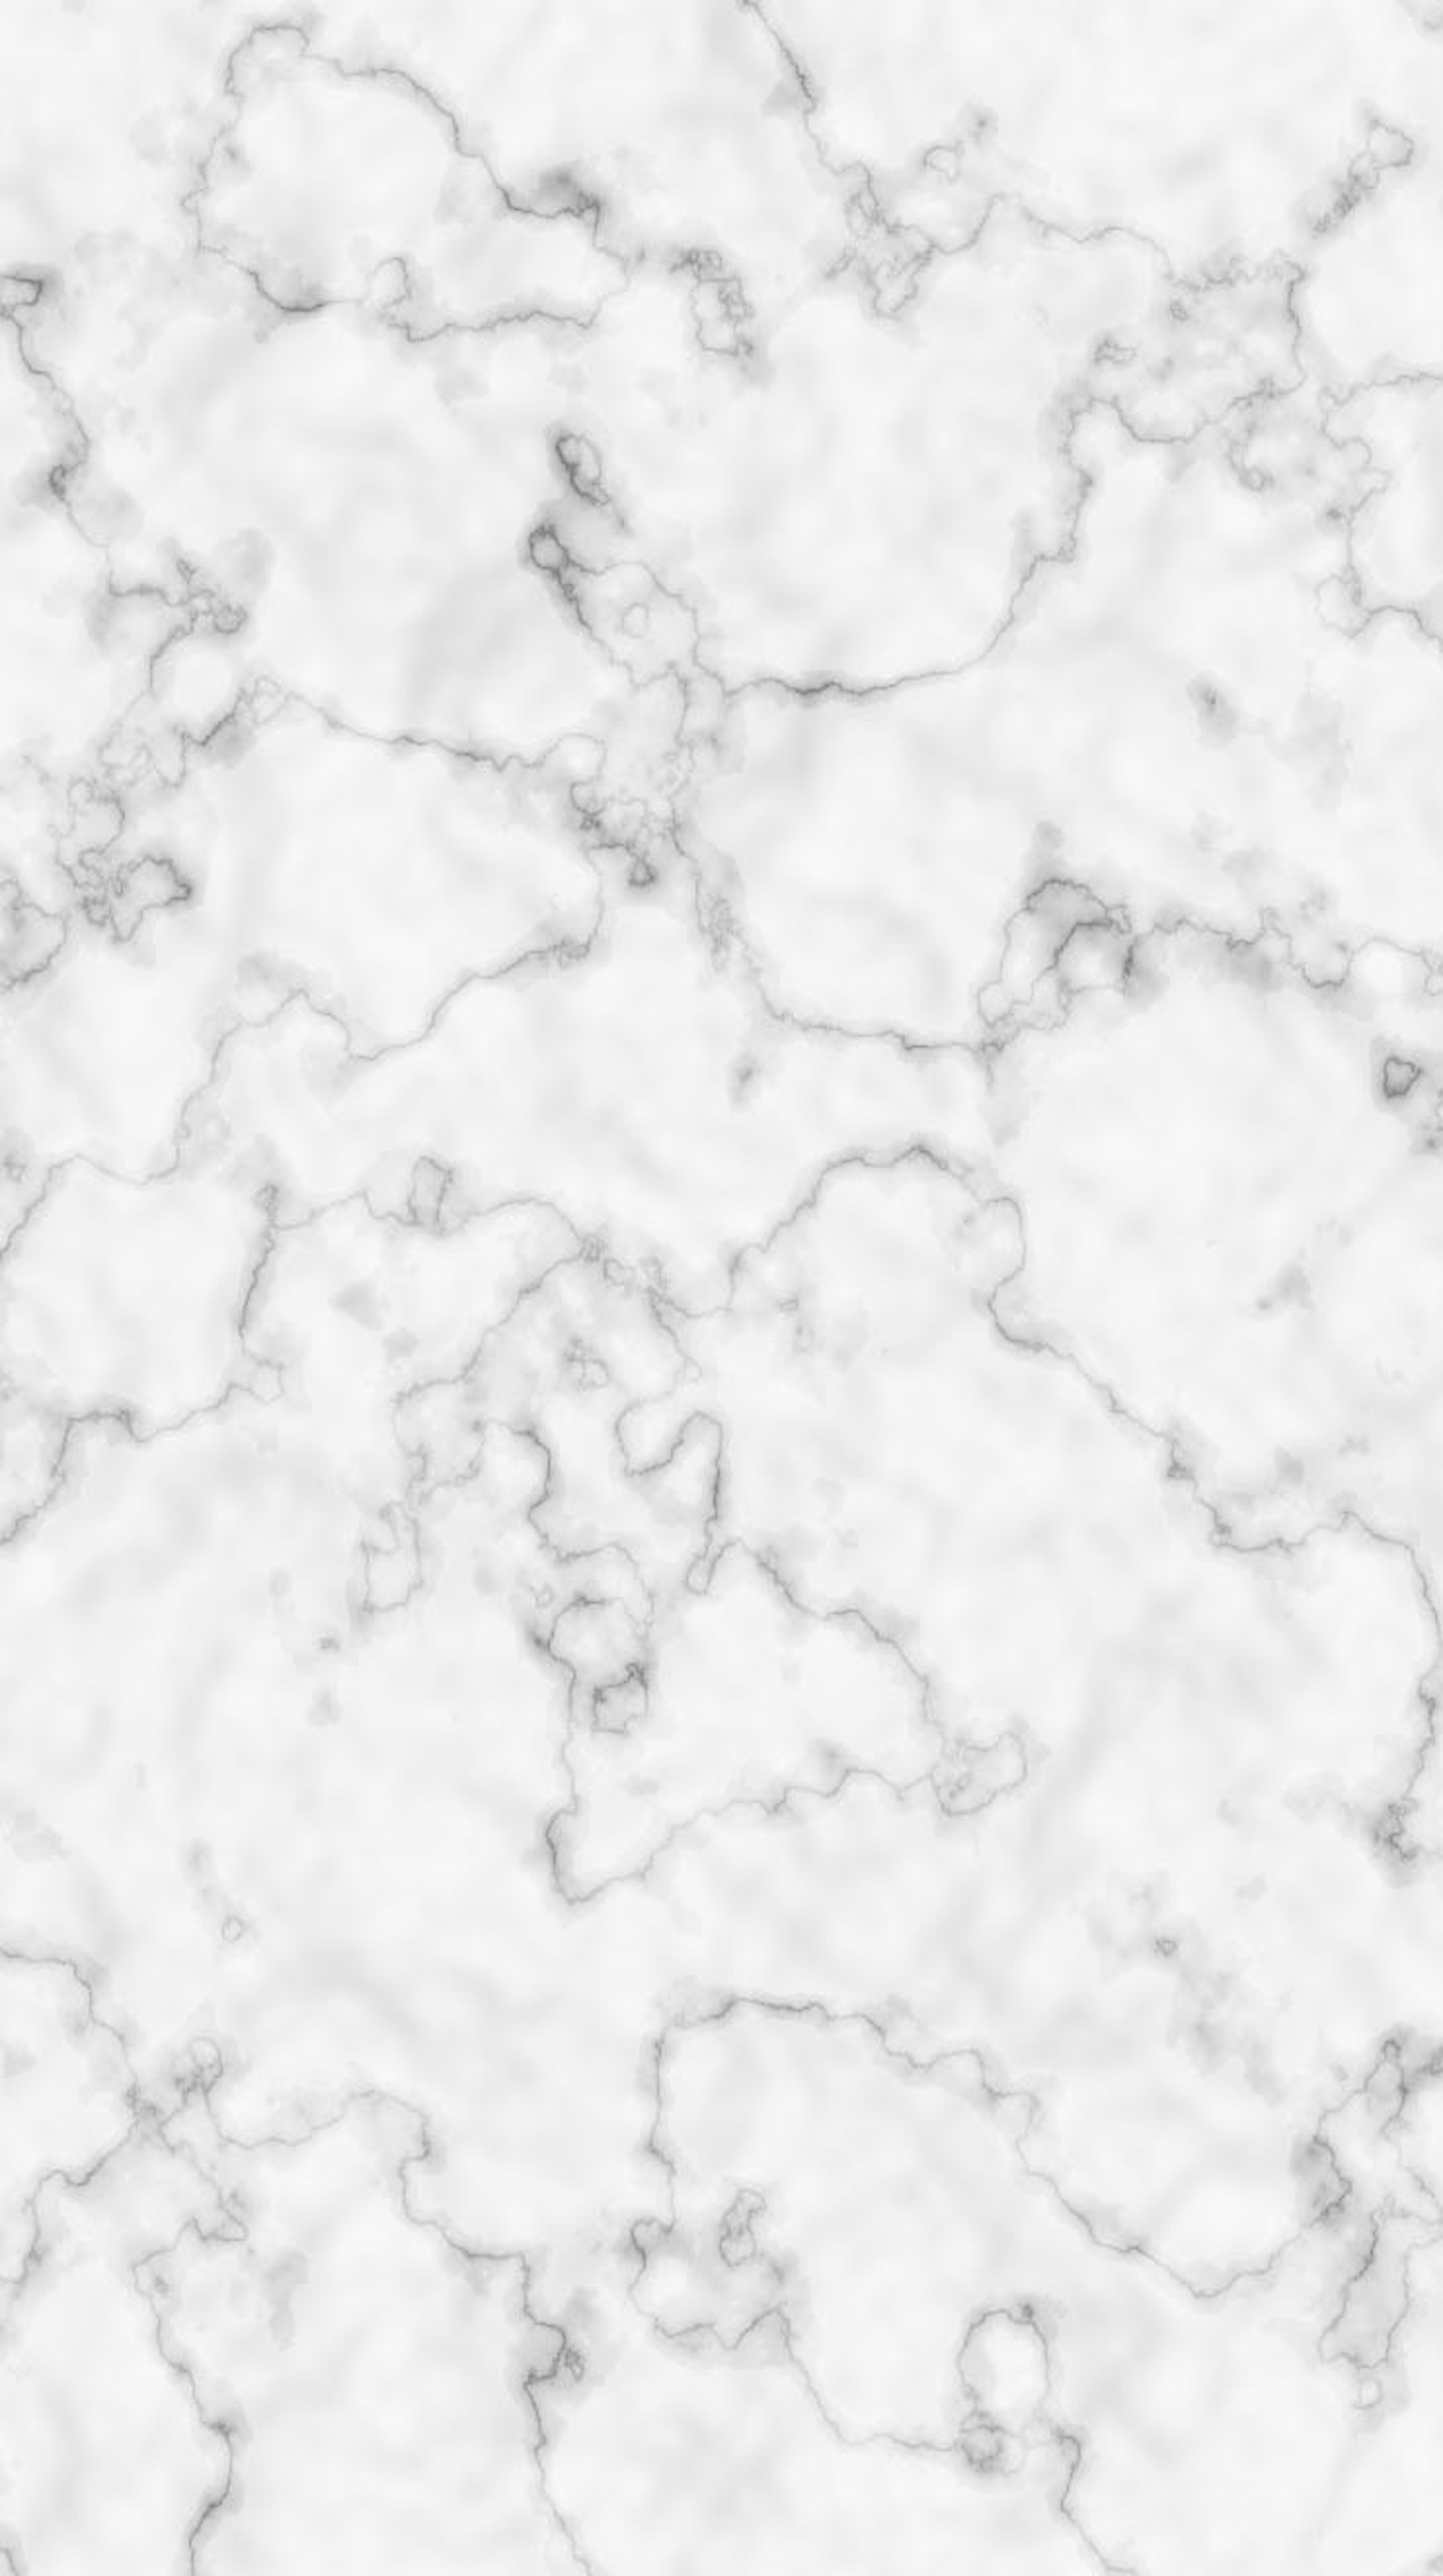 Marble iPhone wallpaper // Beauty and the Chic Wallpaper